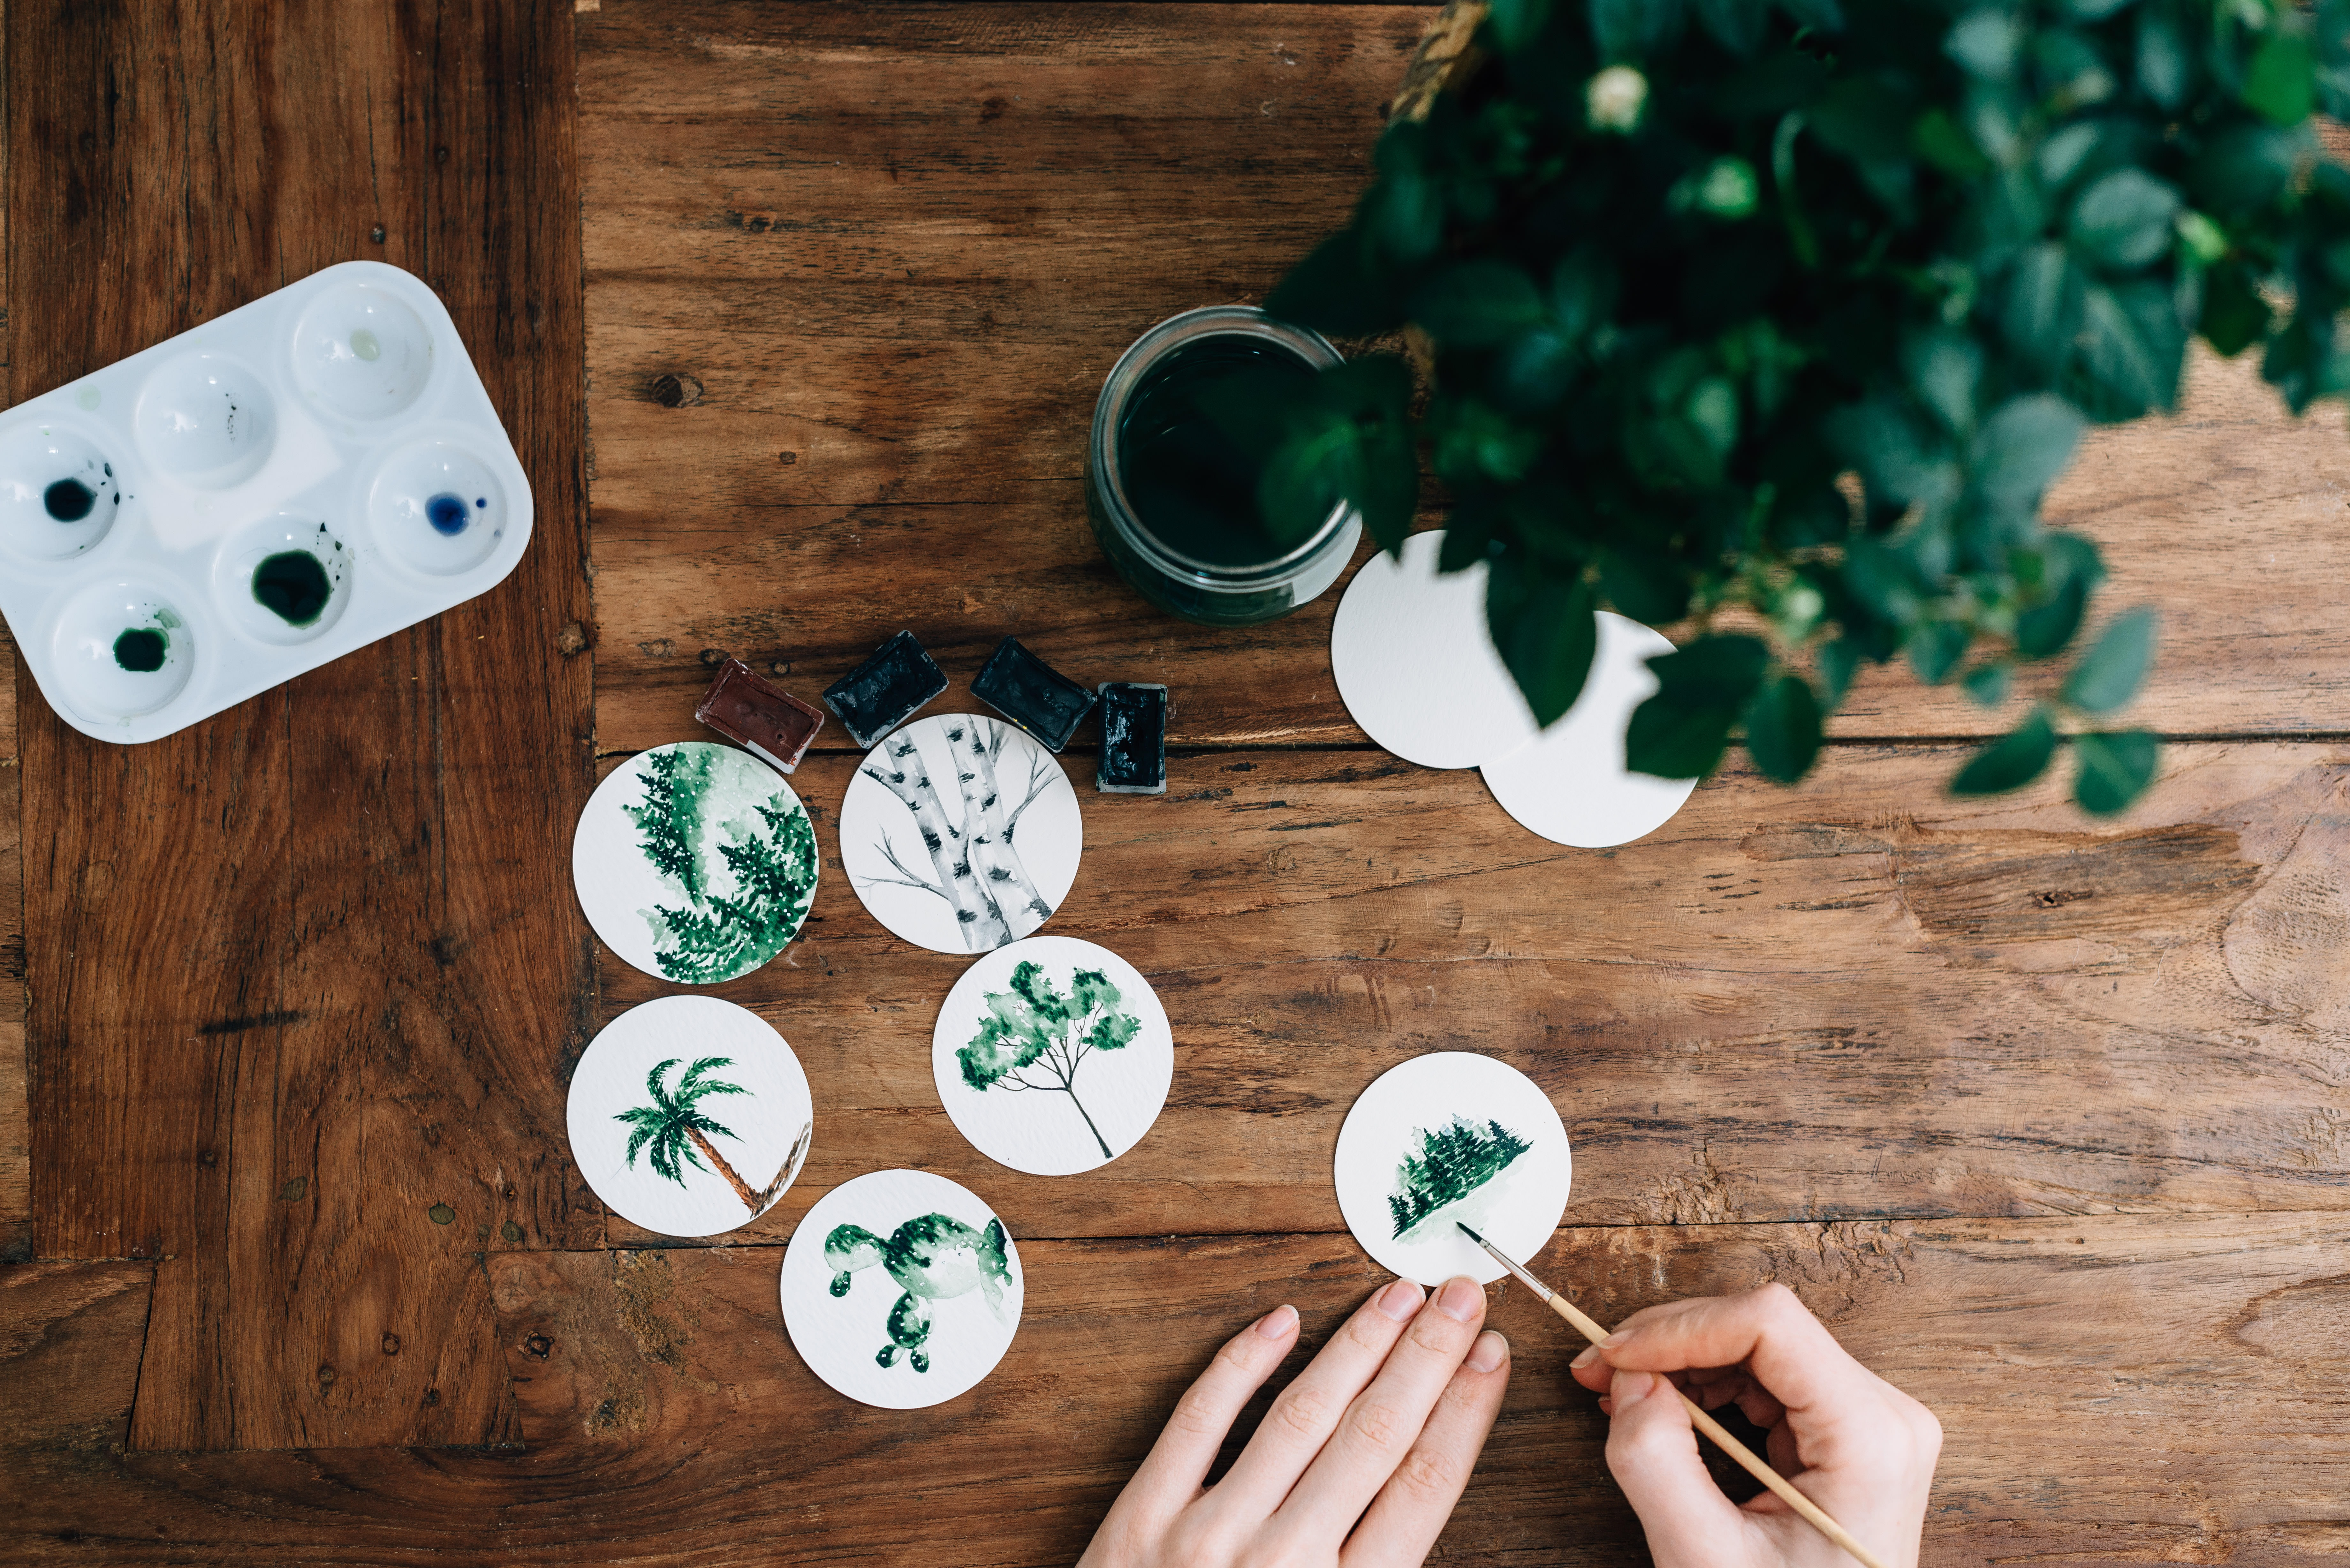 A person painting plants on small white stickers